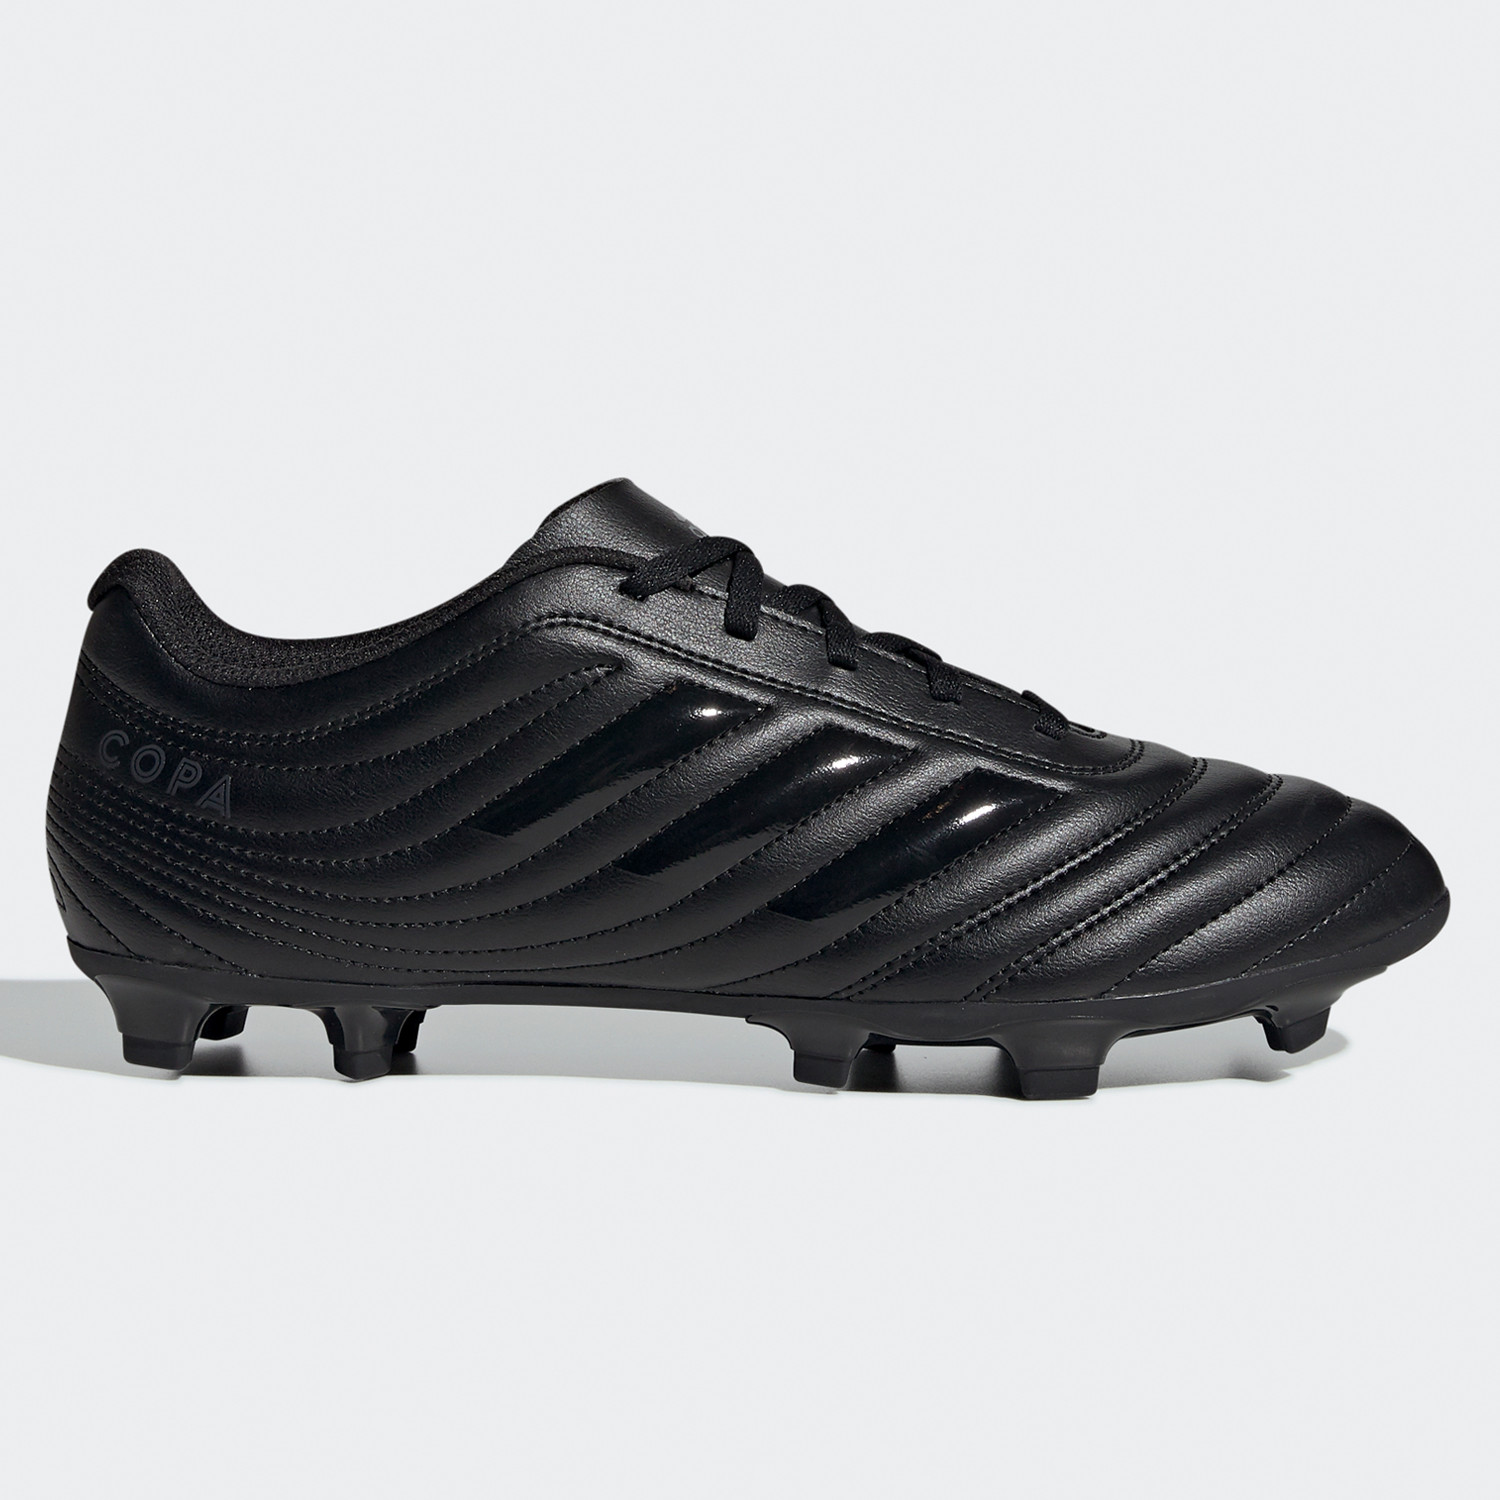 adidas Copa 20.4 FG Football Shoes (9000045913_16828)